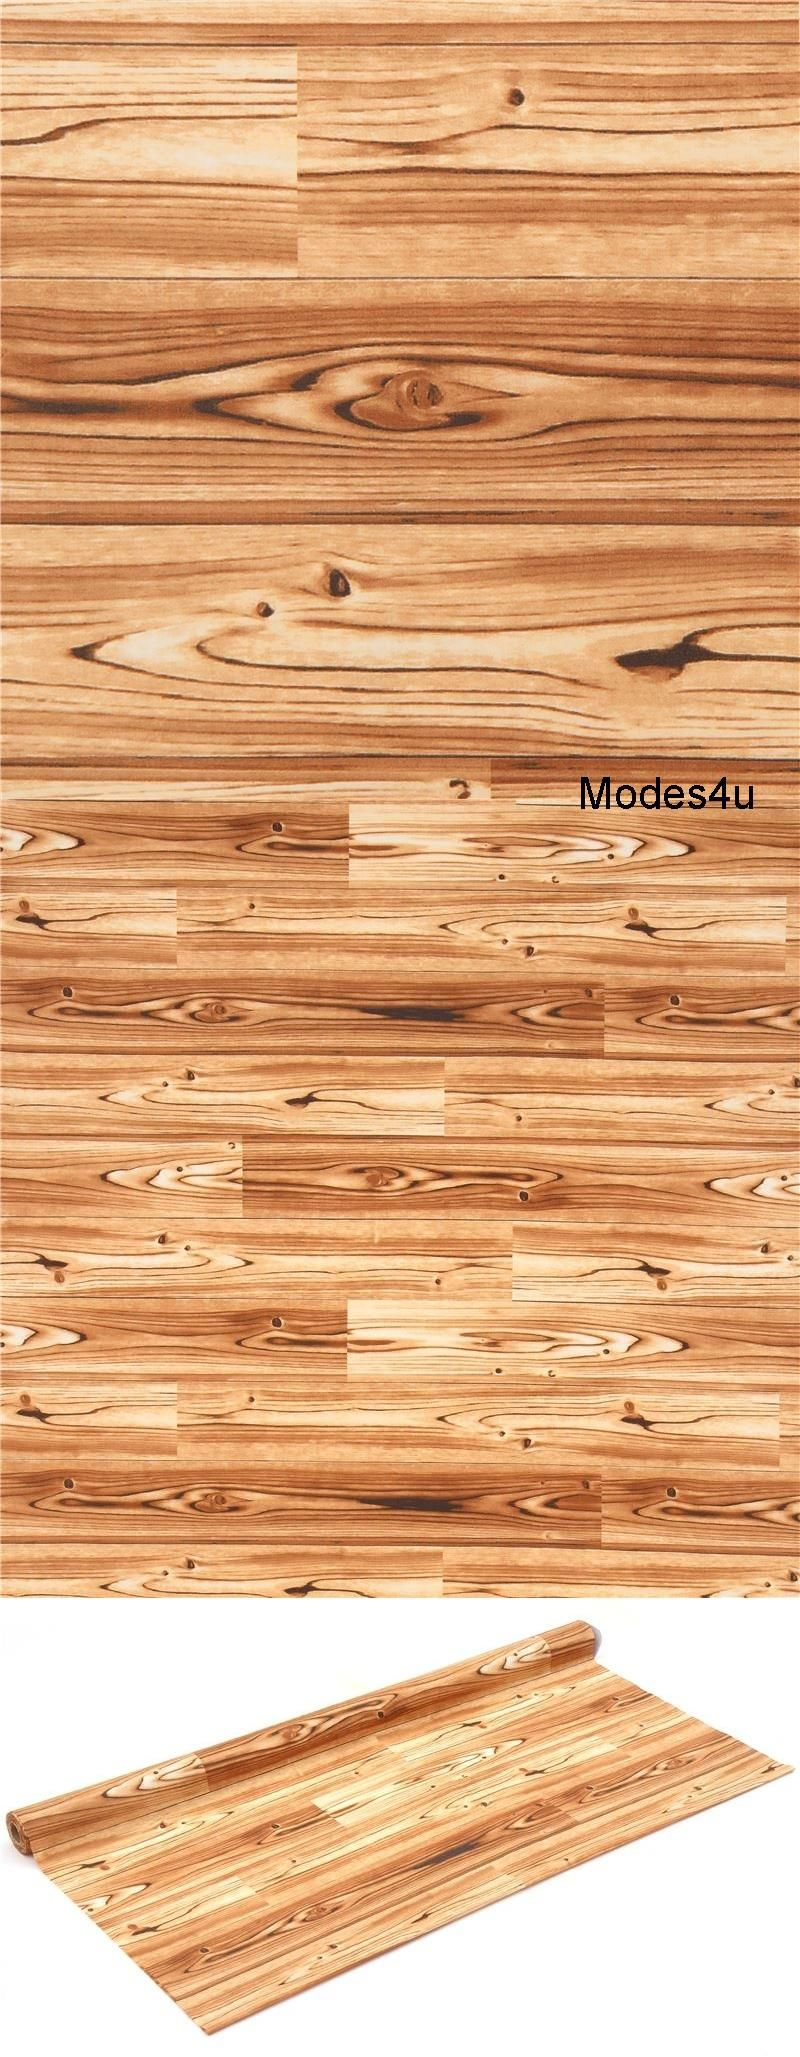 Pin By Modes4u On Japanese Fabric Wood Paneling Laminated Fabric Wooden Panel Design